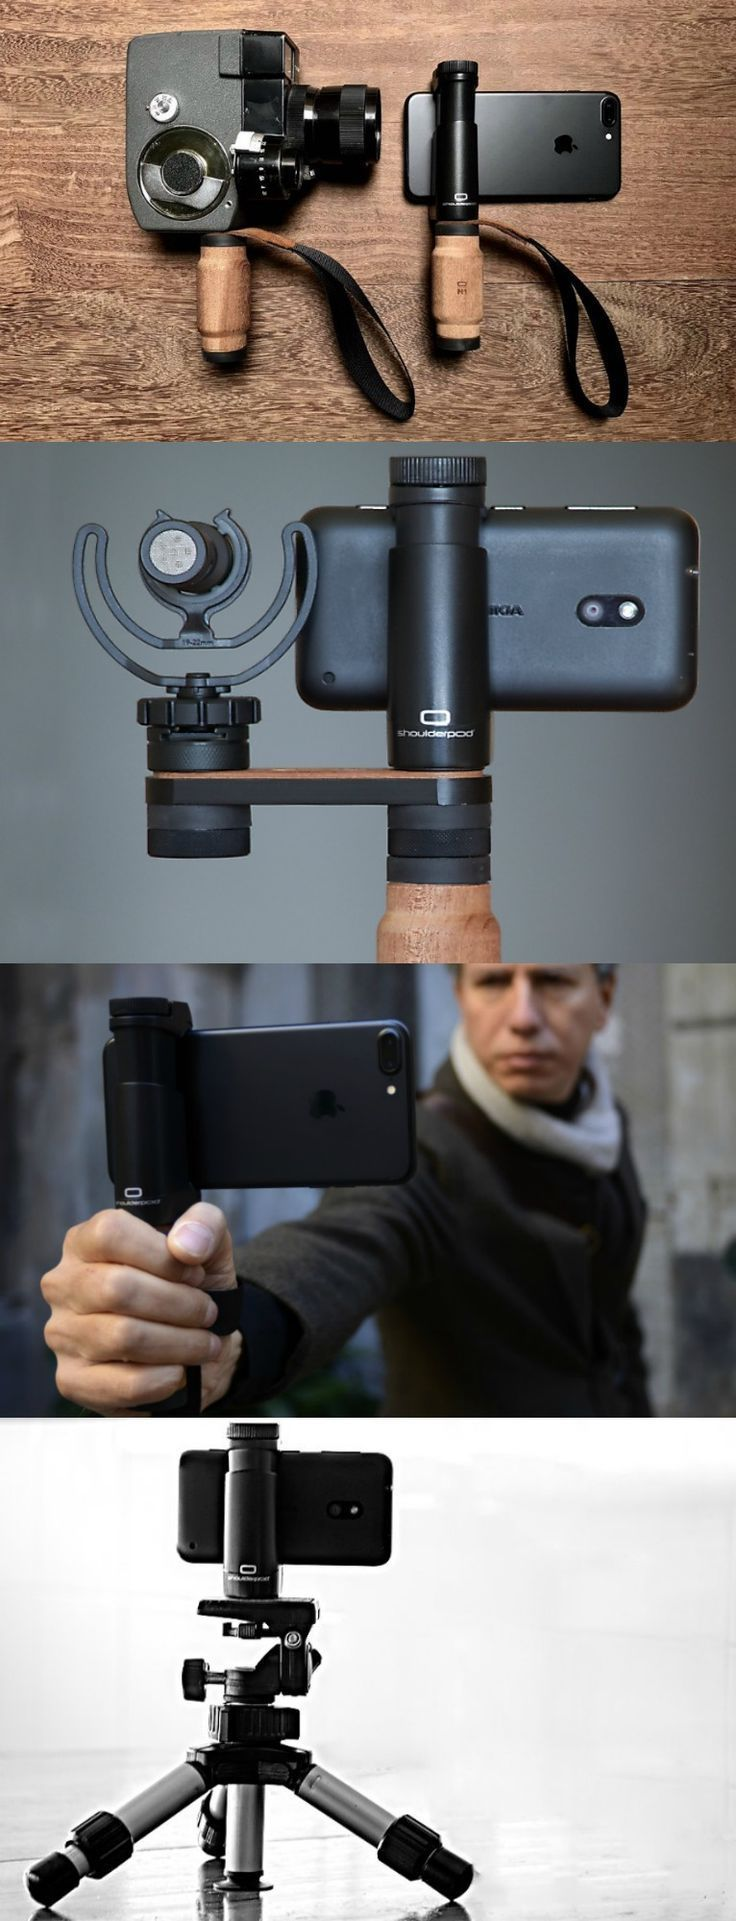 Enhance your smartphone photography with the shoulderpod